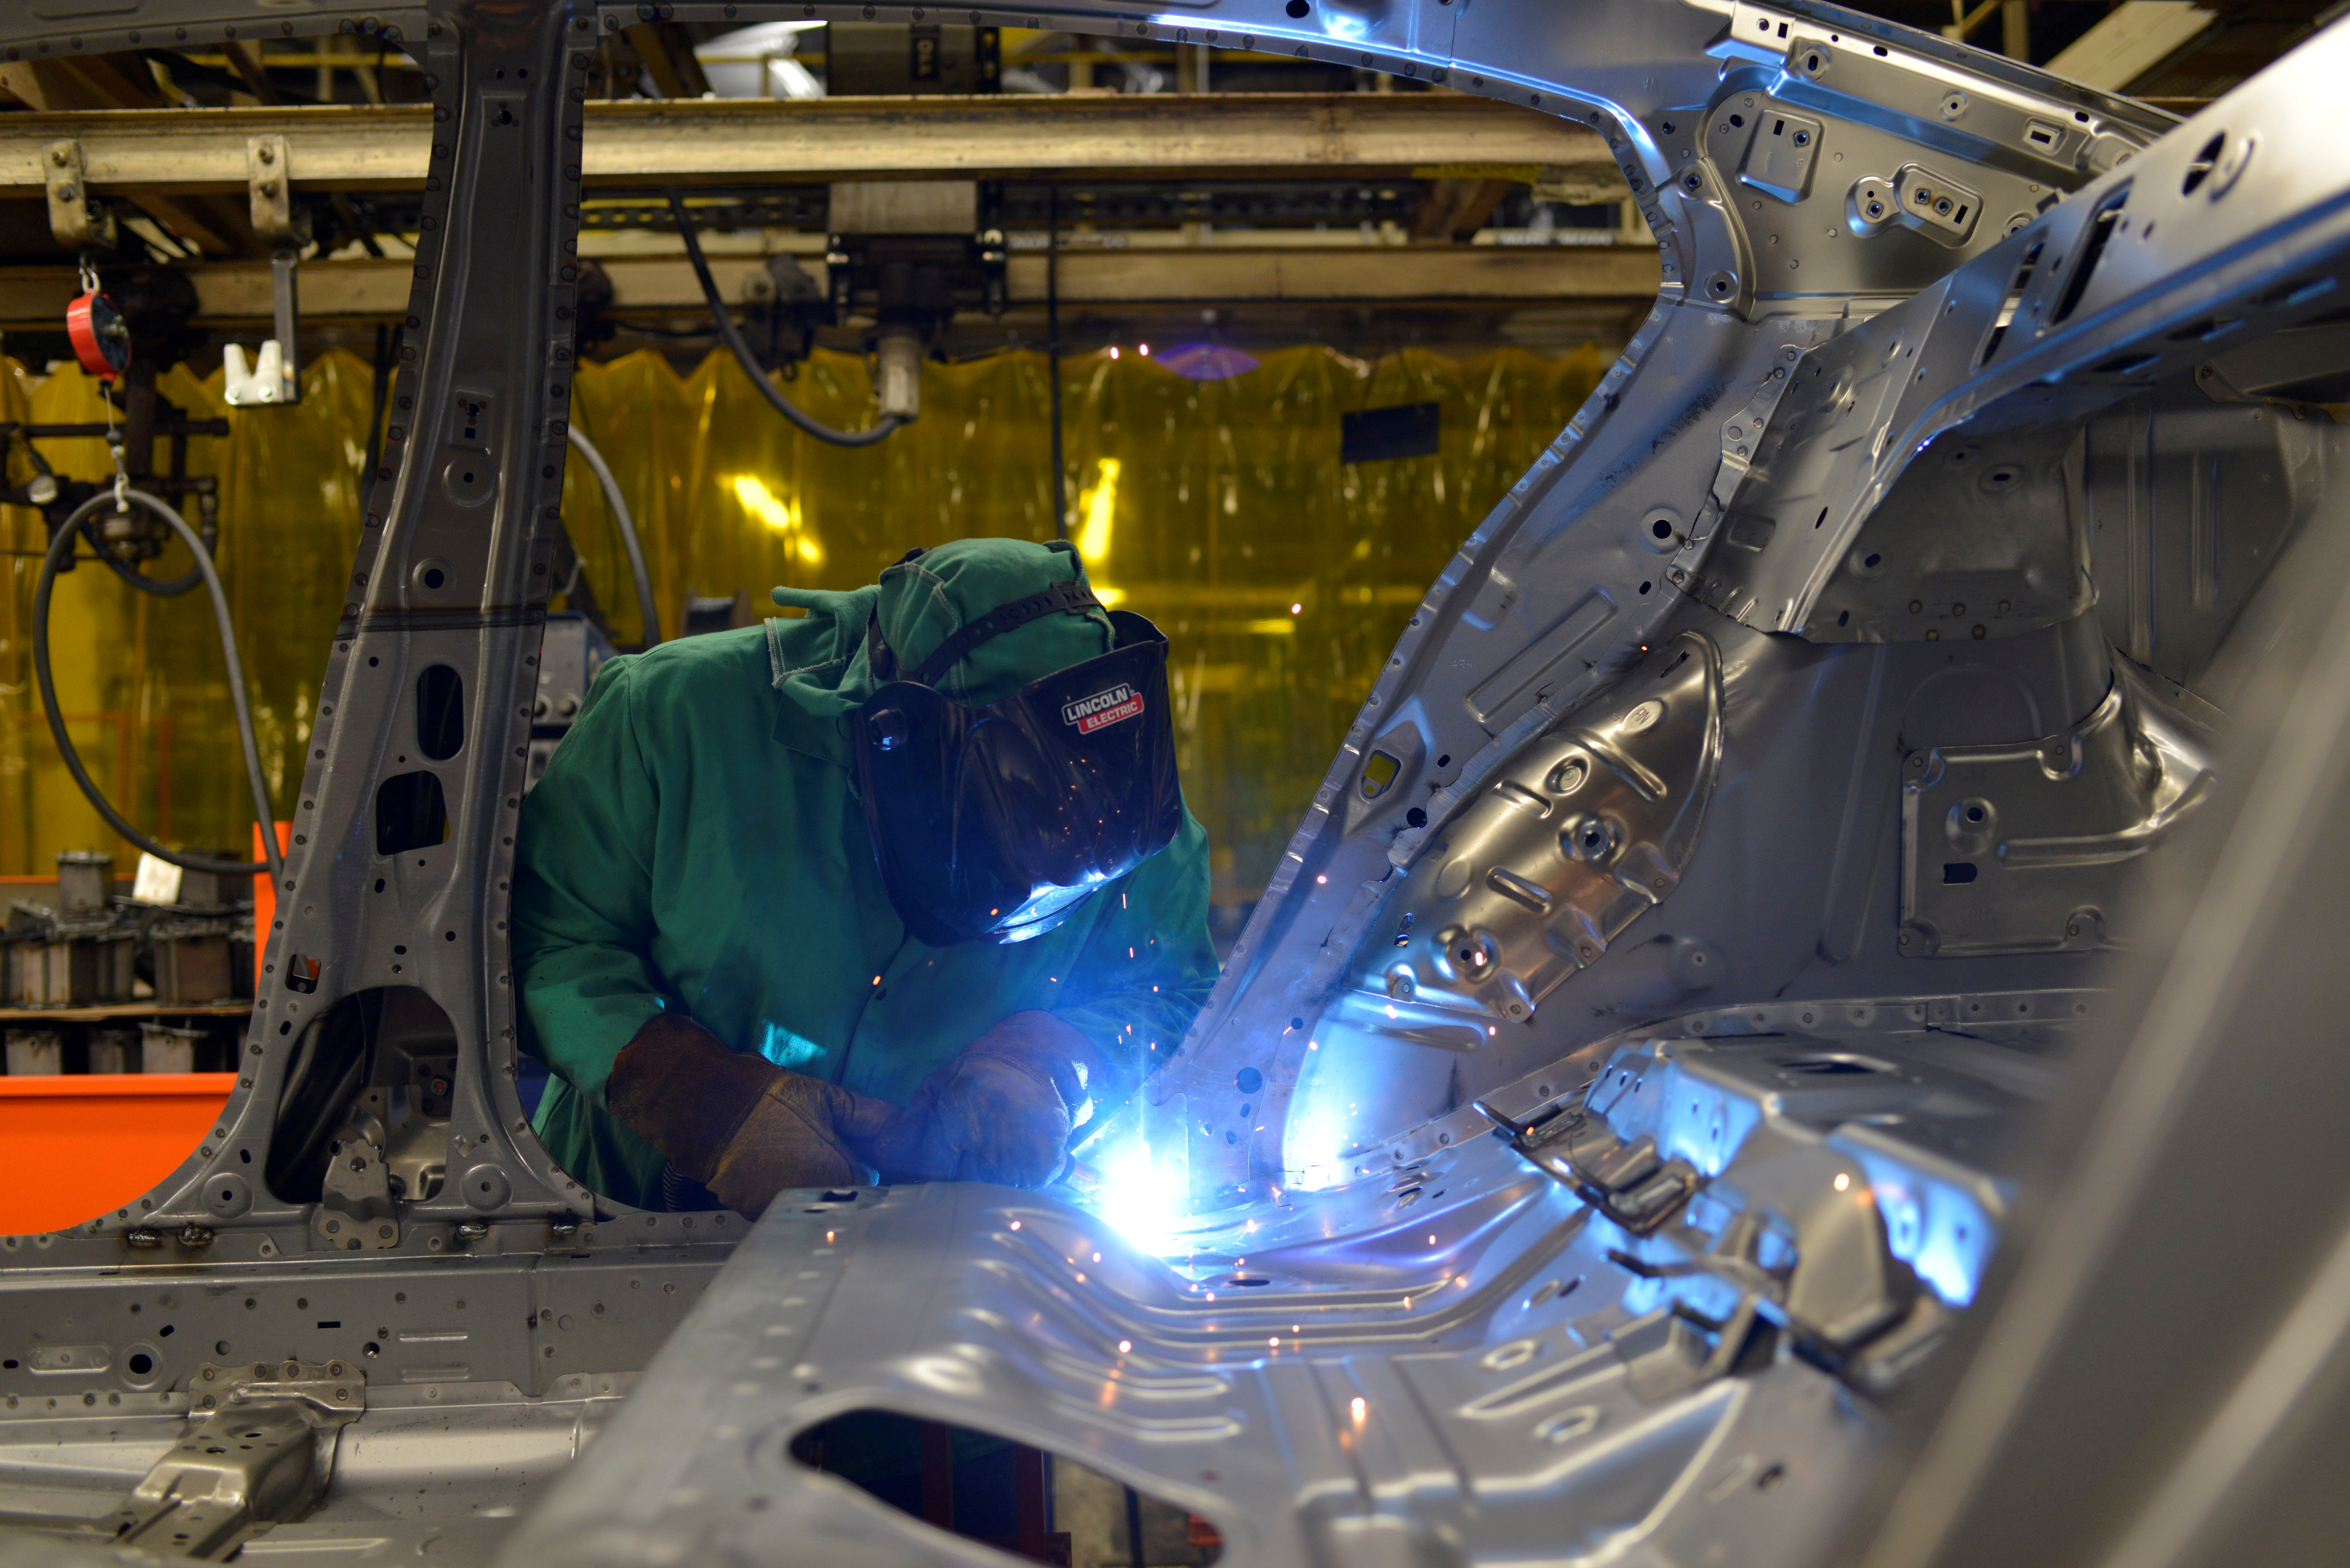 Line workers spot weld parts of the frame on the flex line at Nissan Motor Co's automobile manufacturing plant in Smyrna, Tennessee, U.S., August 23, 2018. REUTERS/William DeShazer/File Photo